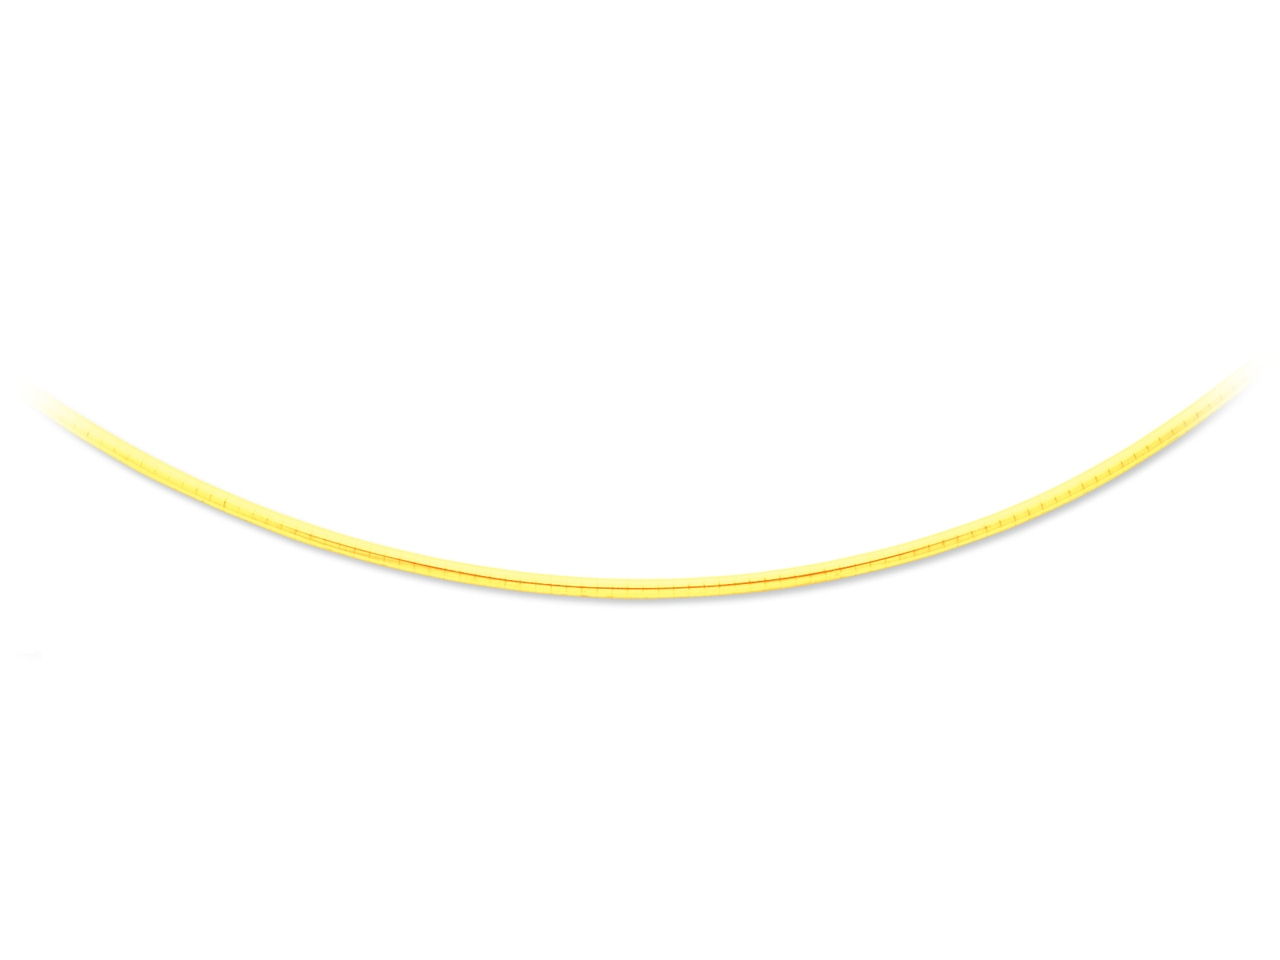 Collier oméga bombé, Or jaune 18k, 2 mm, 42 cm